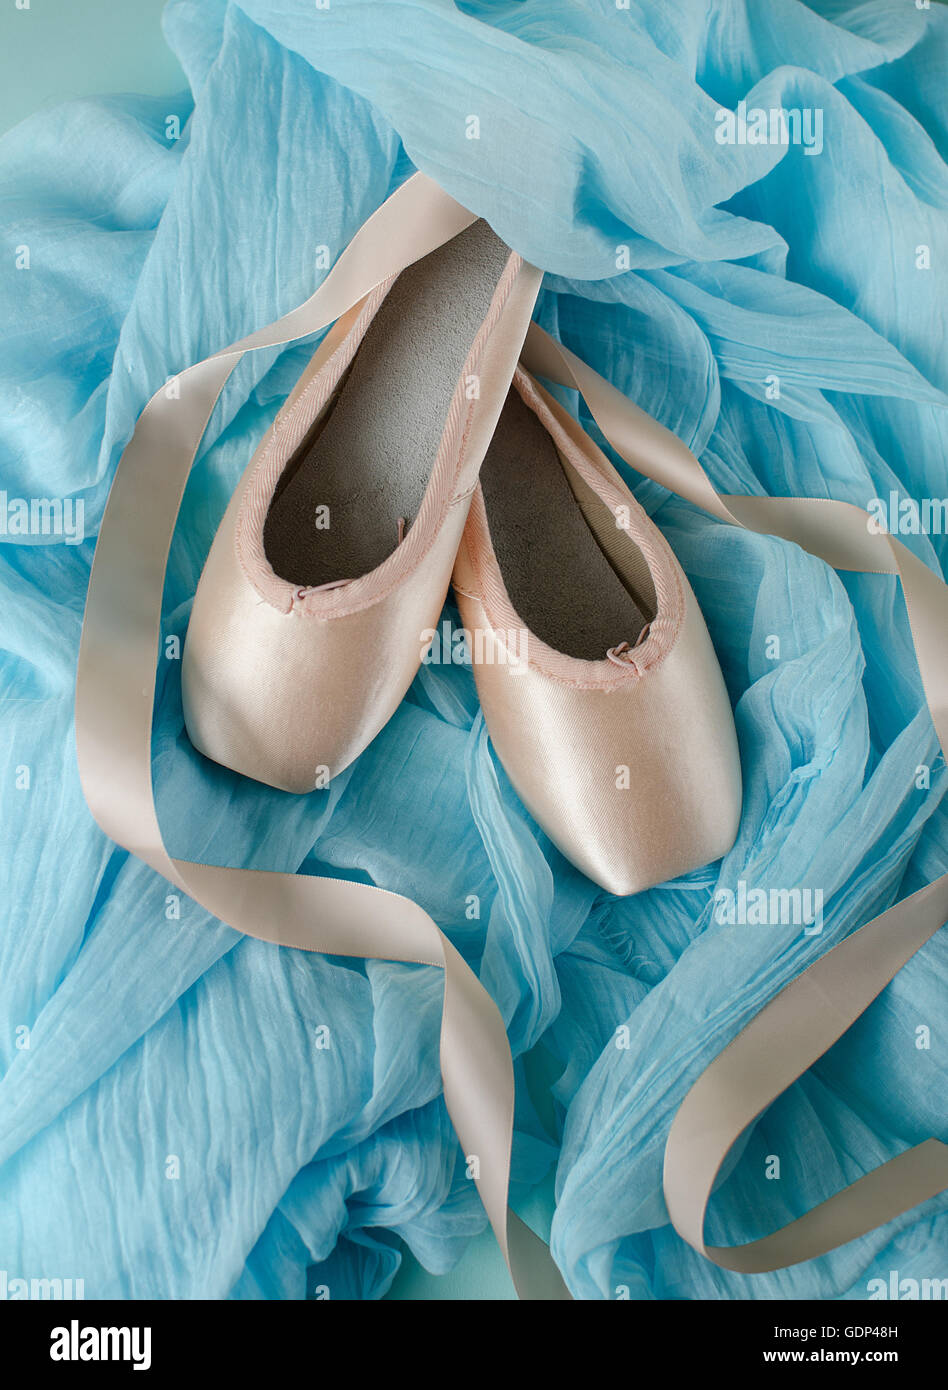 A pair of pointe shoes on light blue fabric background - Stock Image